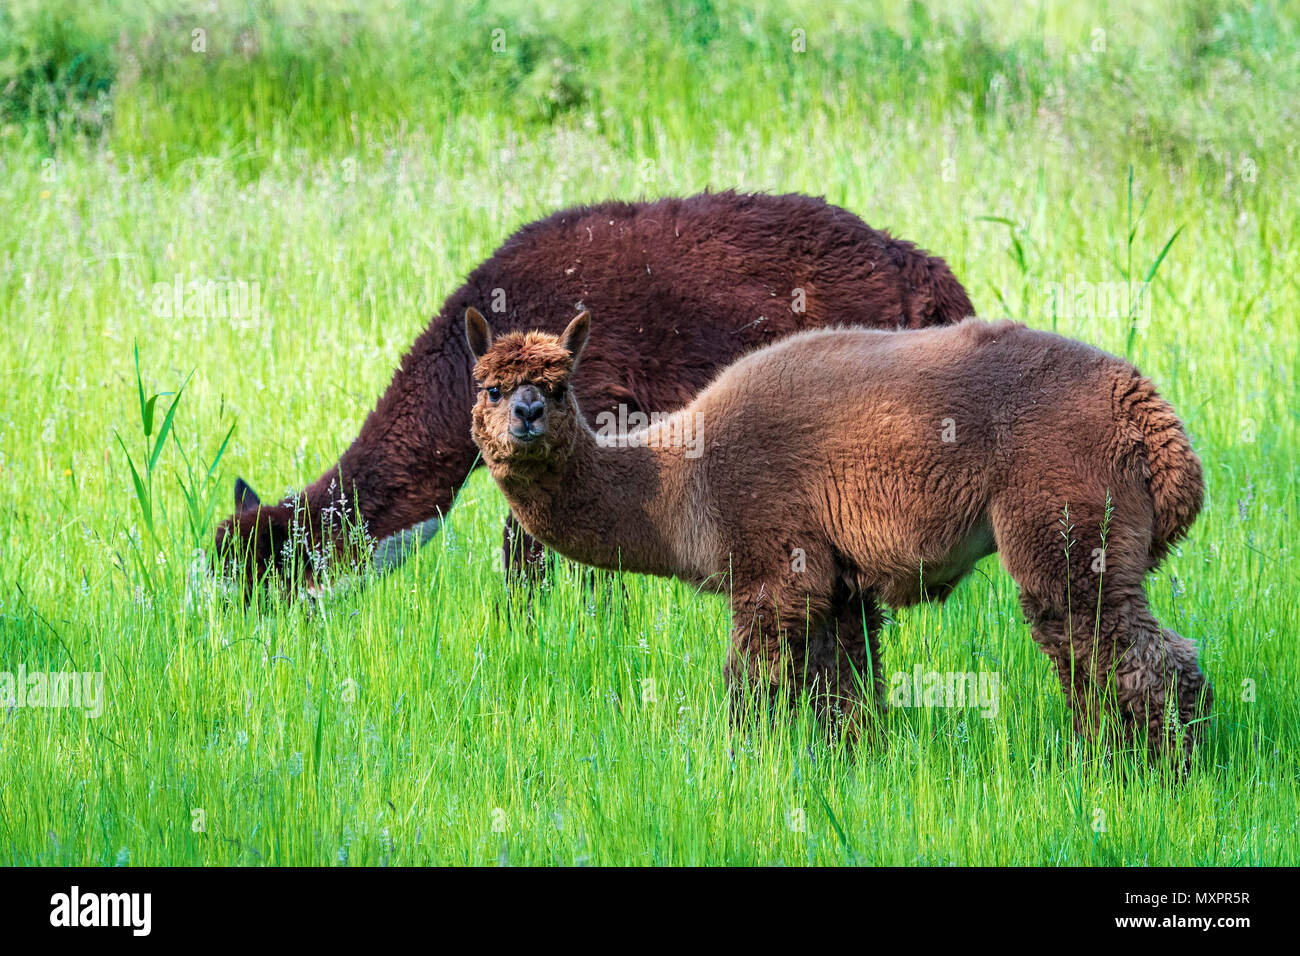 Llamas in field, domesticated South American camelid - Stock Image